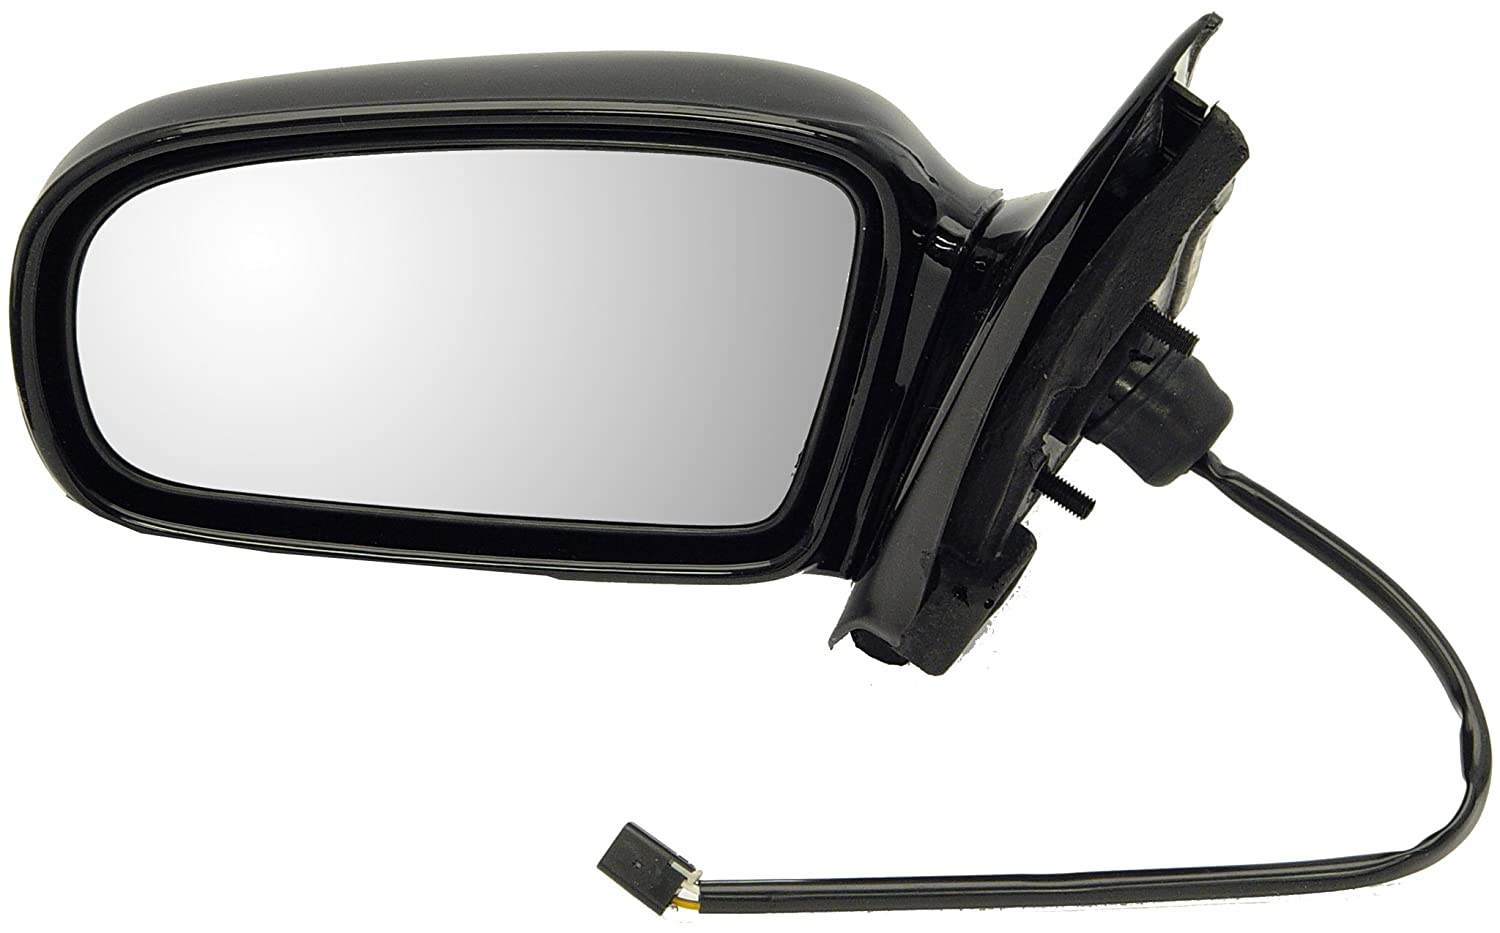 Dorman 955-1680 Nissan Altima Driver Side Power Replacement Mirror